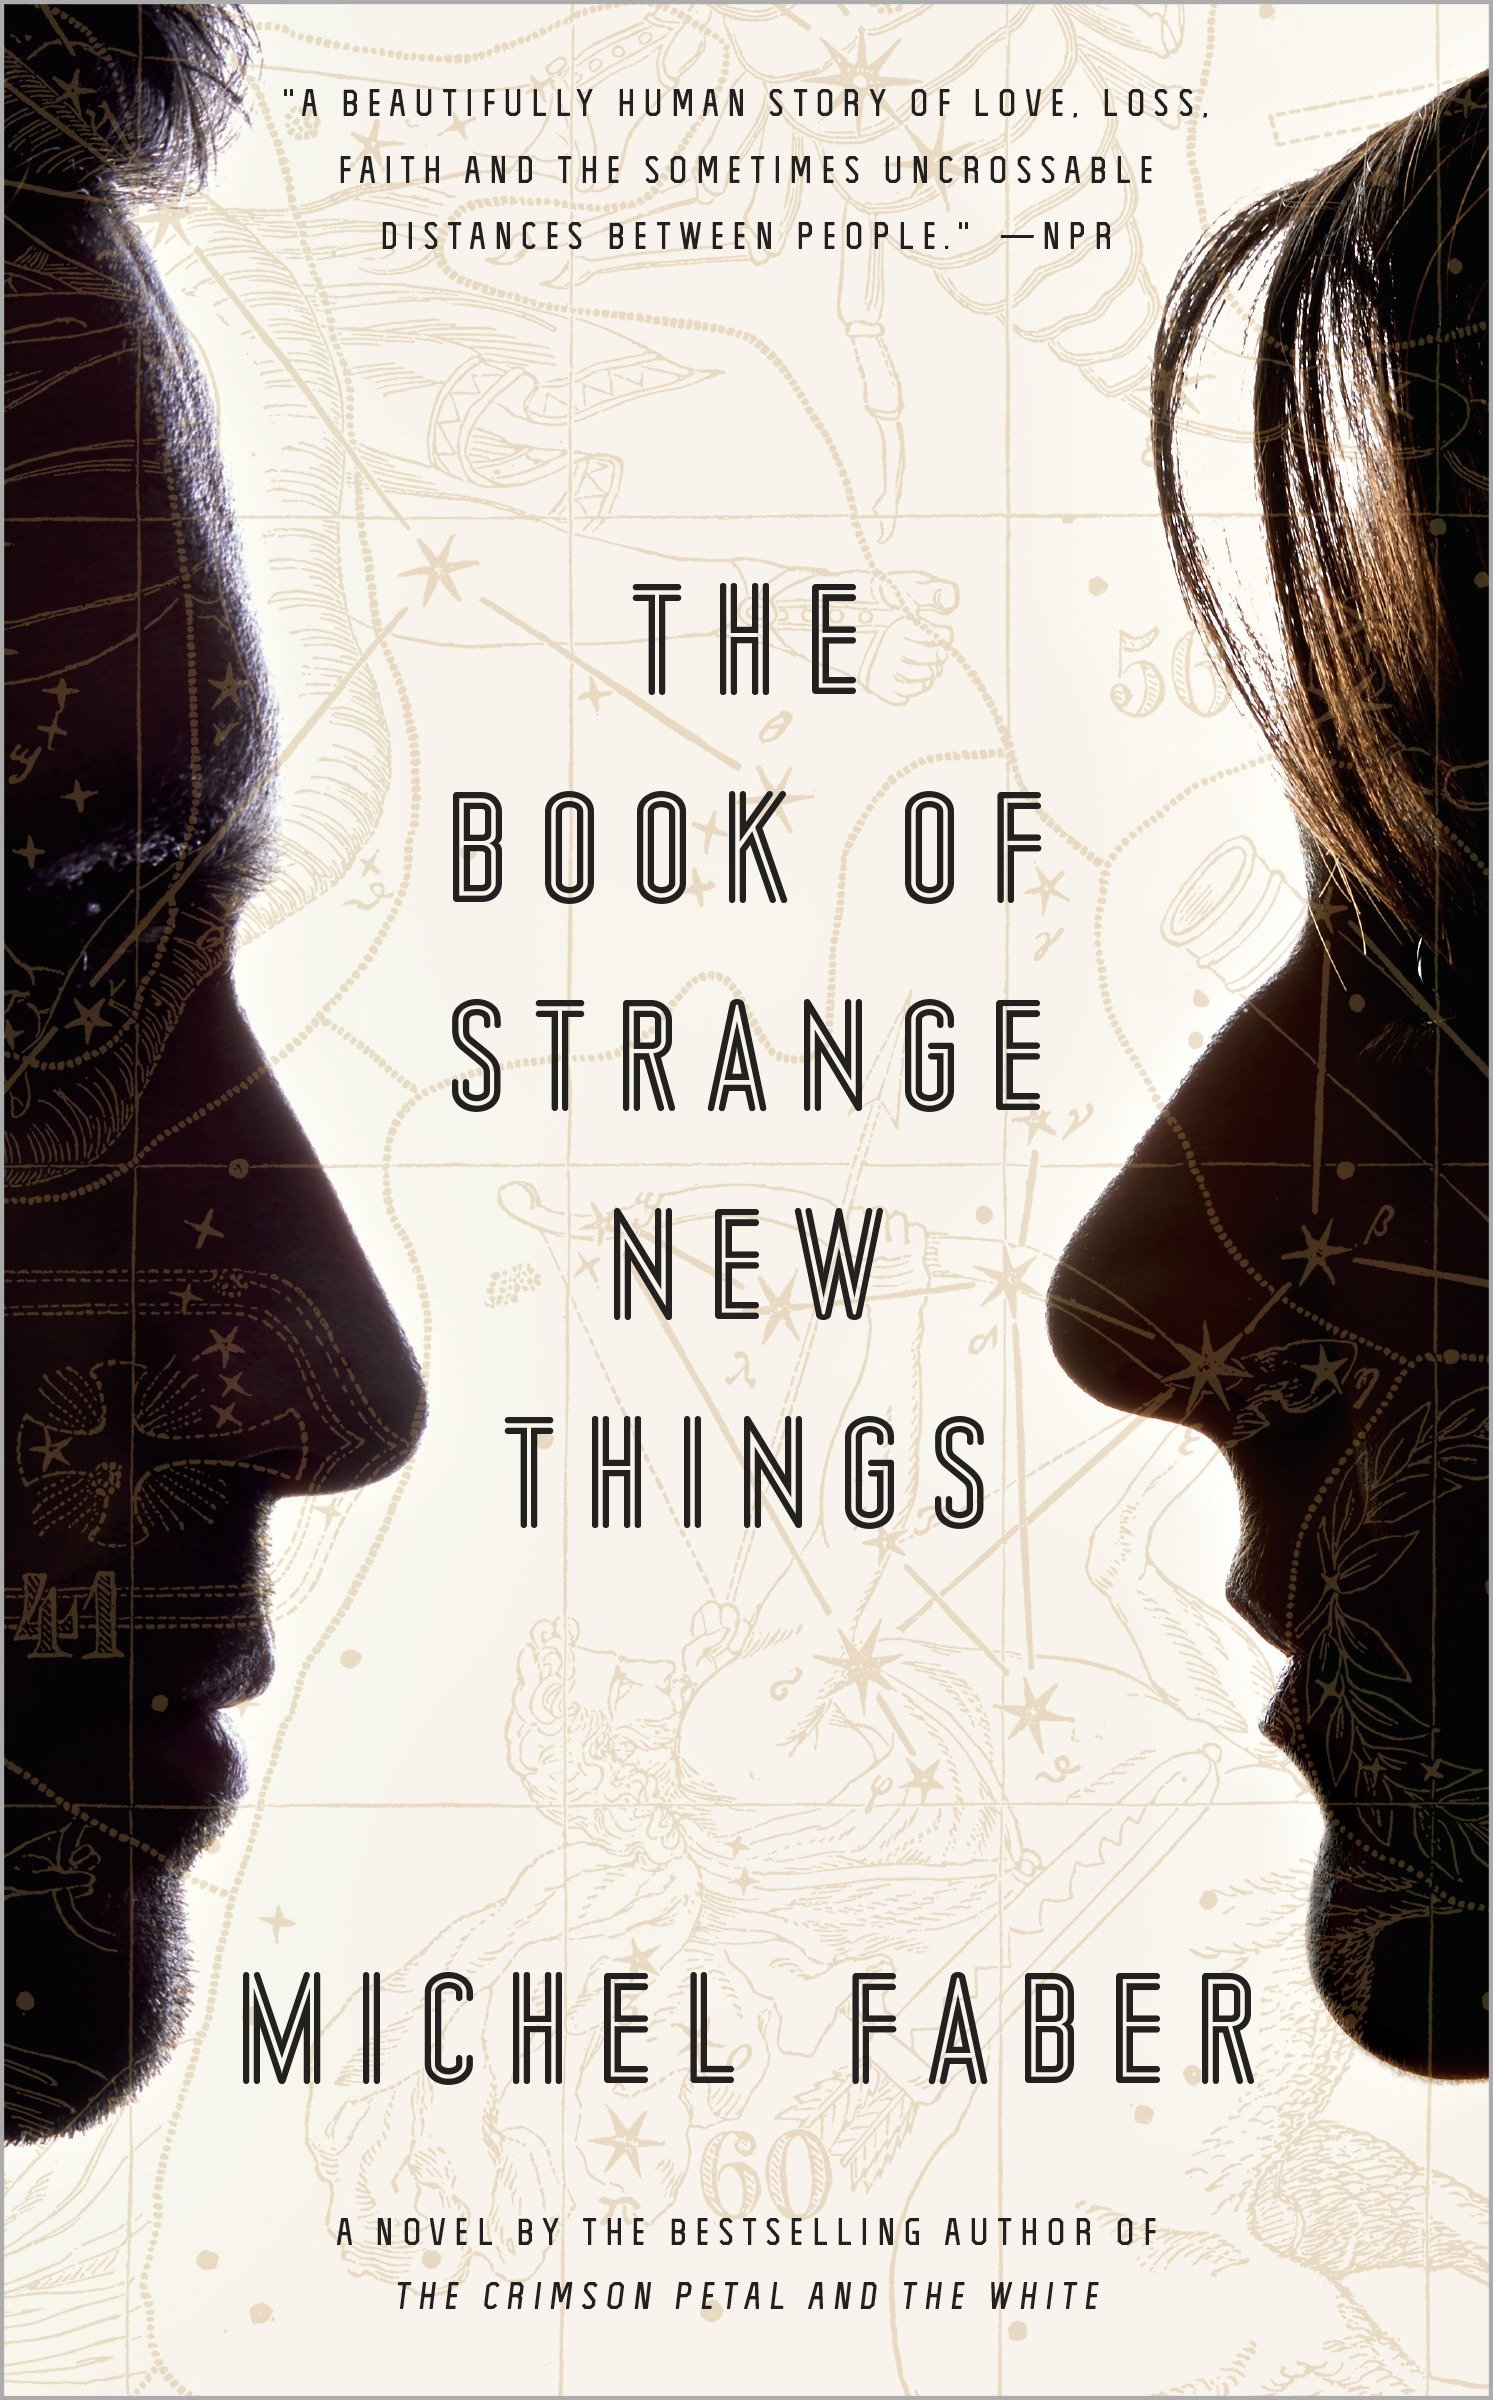 The book of strange new things cover image